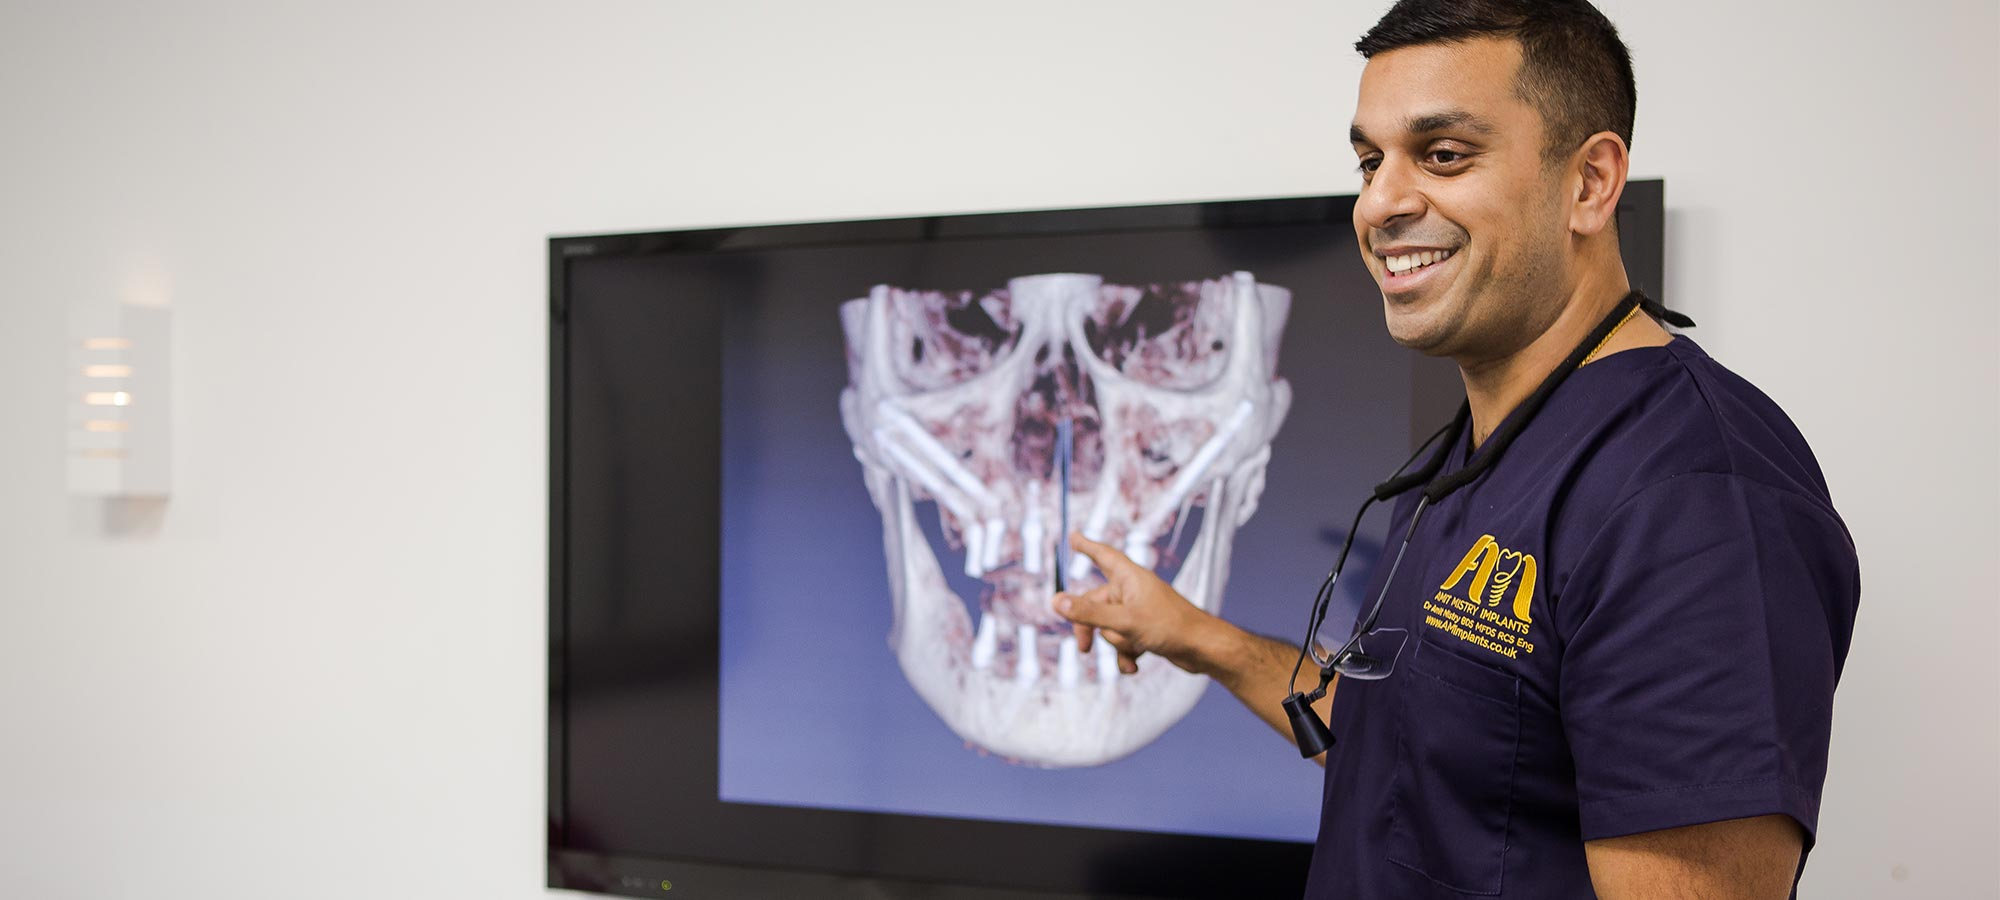 Amit Mistry - Implant Dentist